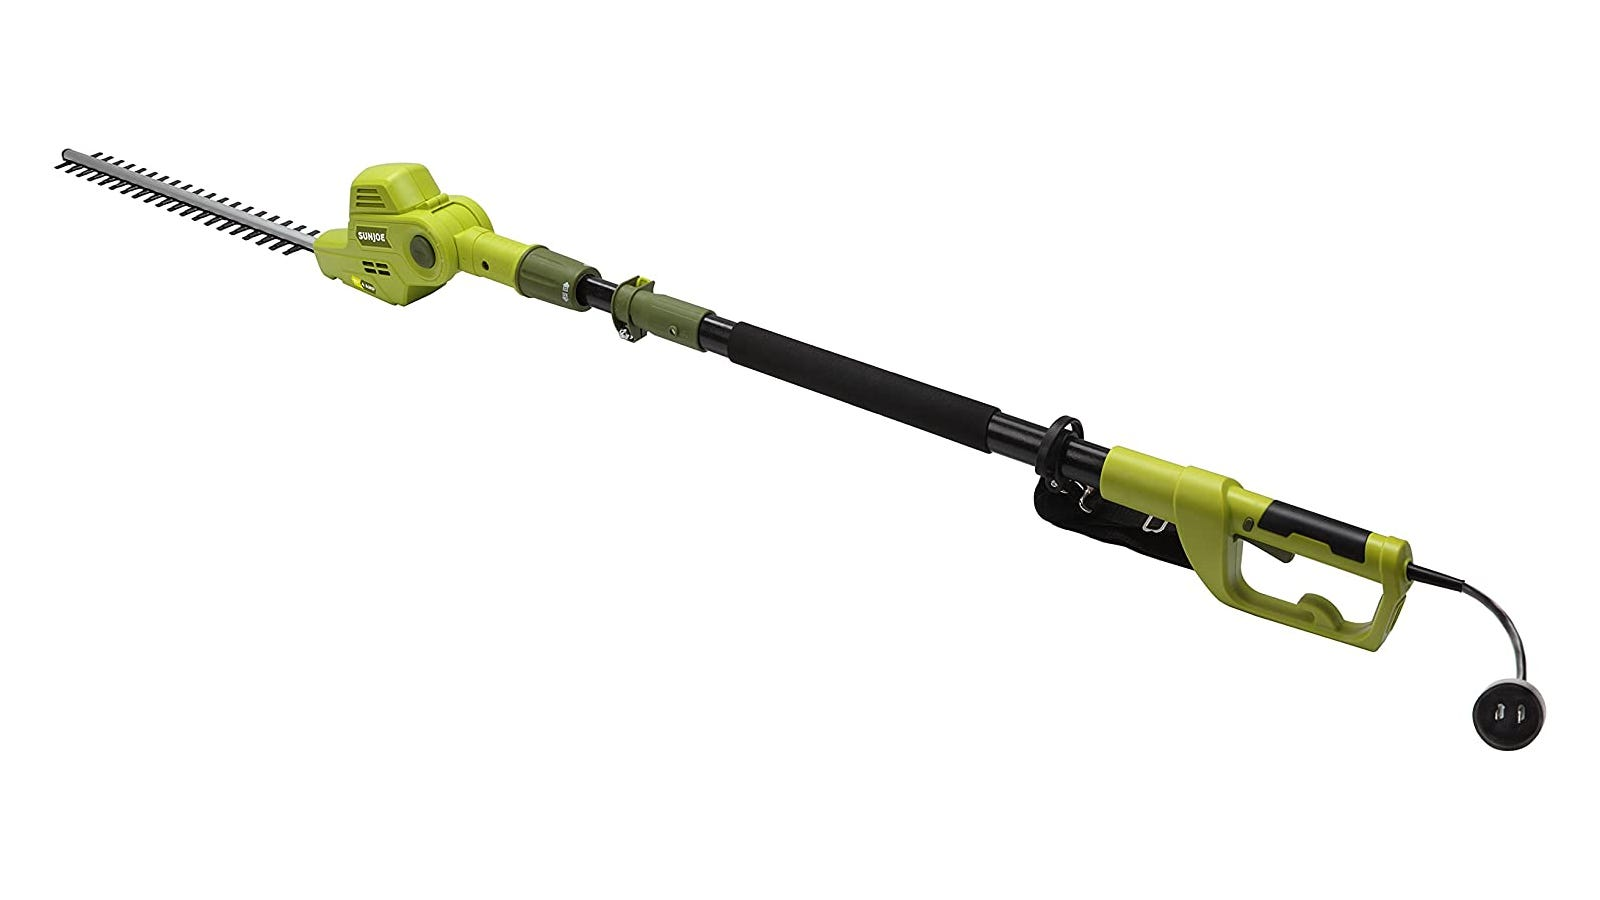 Green hedge trimmer with telescoping pole design, pivoting head, and 21-inch blade